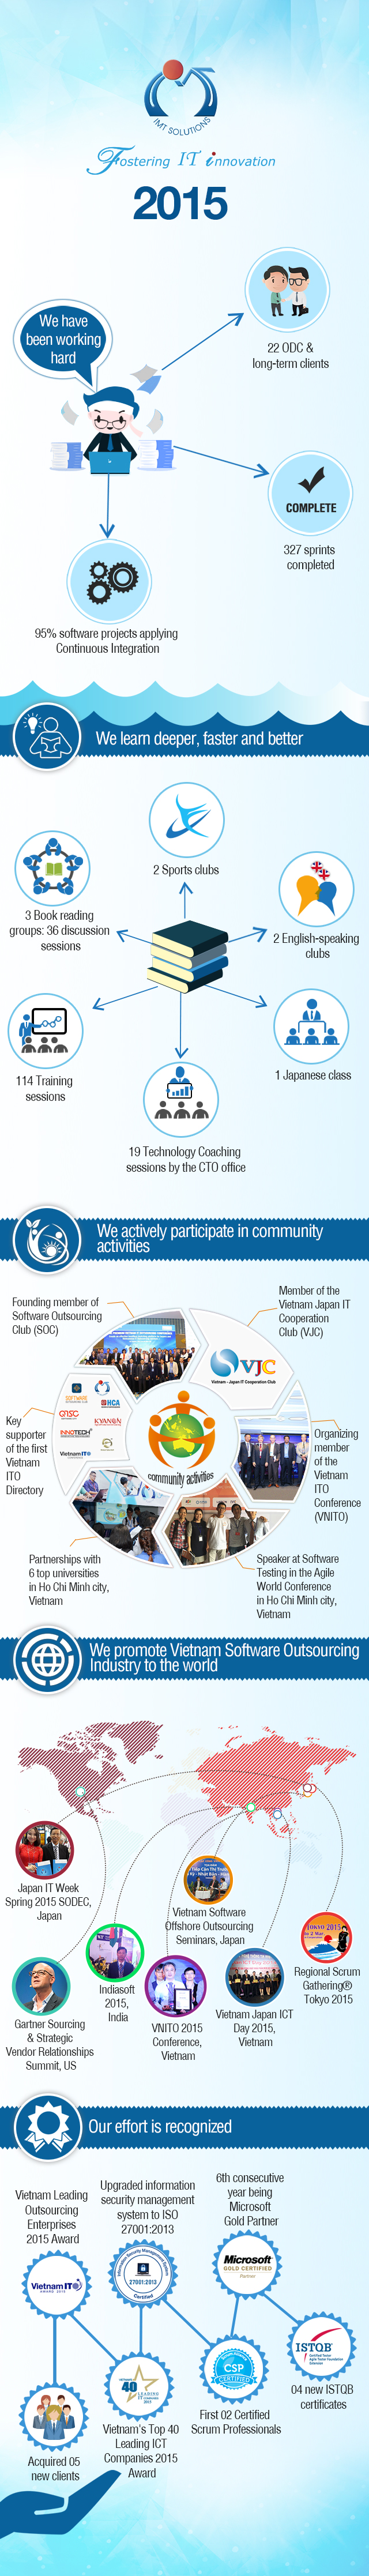 Year 2015 Achievements of IMT Solutions - A leading offshore outsourcing company in Vietnam